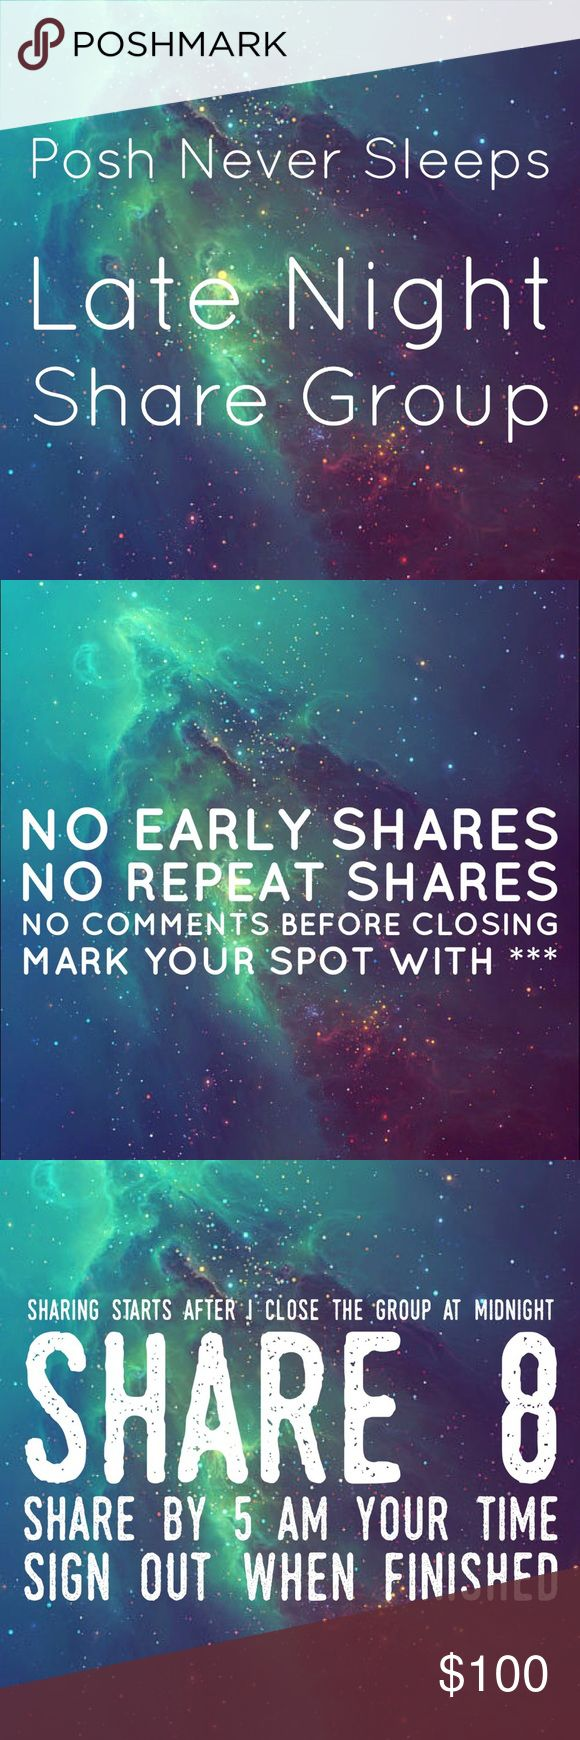 """2/22 Wed Late Night Share Group Sign up closes at midnight est⭐️Tag your name to sign up⭐️Write """"new"""" if you're new⭐️Share 8 for sale items from everyone who signs up⭐️No sharing until midnight est when I close the group⭐️Share by 5am your time⭐️Be Posh compliant or you may be skipped⭐️Mark your spot with ***and first 3 letters of where you left off⭐️Sign out when done⭐️Be fair and do your part or you will be blocked⭐️Please only ask questions in the Q&A listing under """"other.""""⭐️No comments…"""